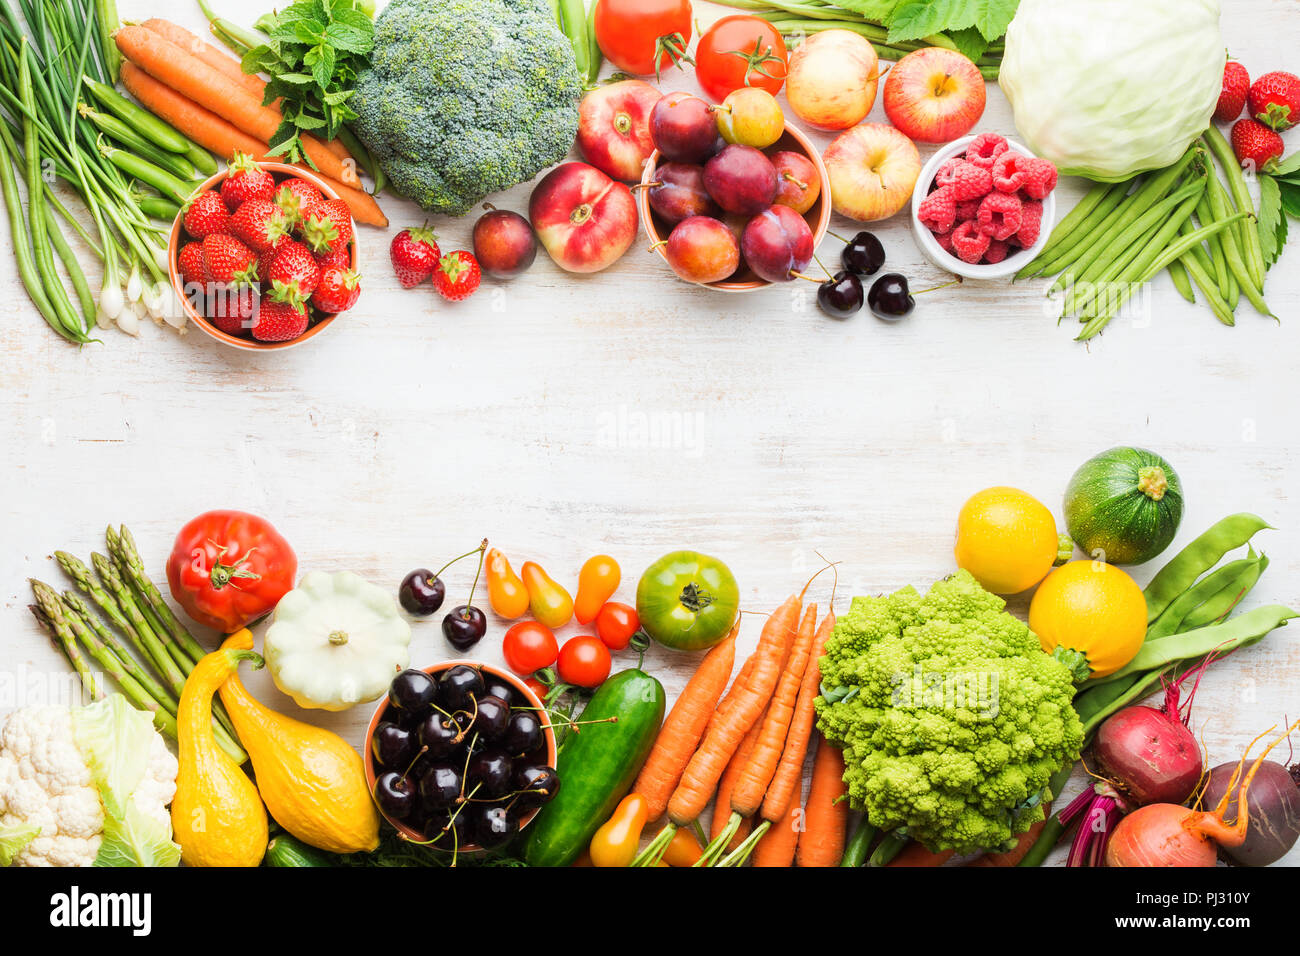 Summer Fruits Vegetables Berries, Apples Cherries Peaches Strawberries  Cabbage Broccoli Cauliflower Squash Tomatoes Carrots Spring Onions Beans  Beetroot, ...